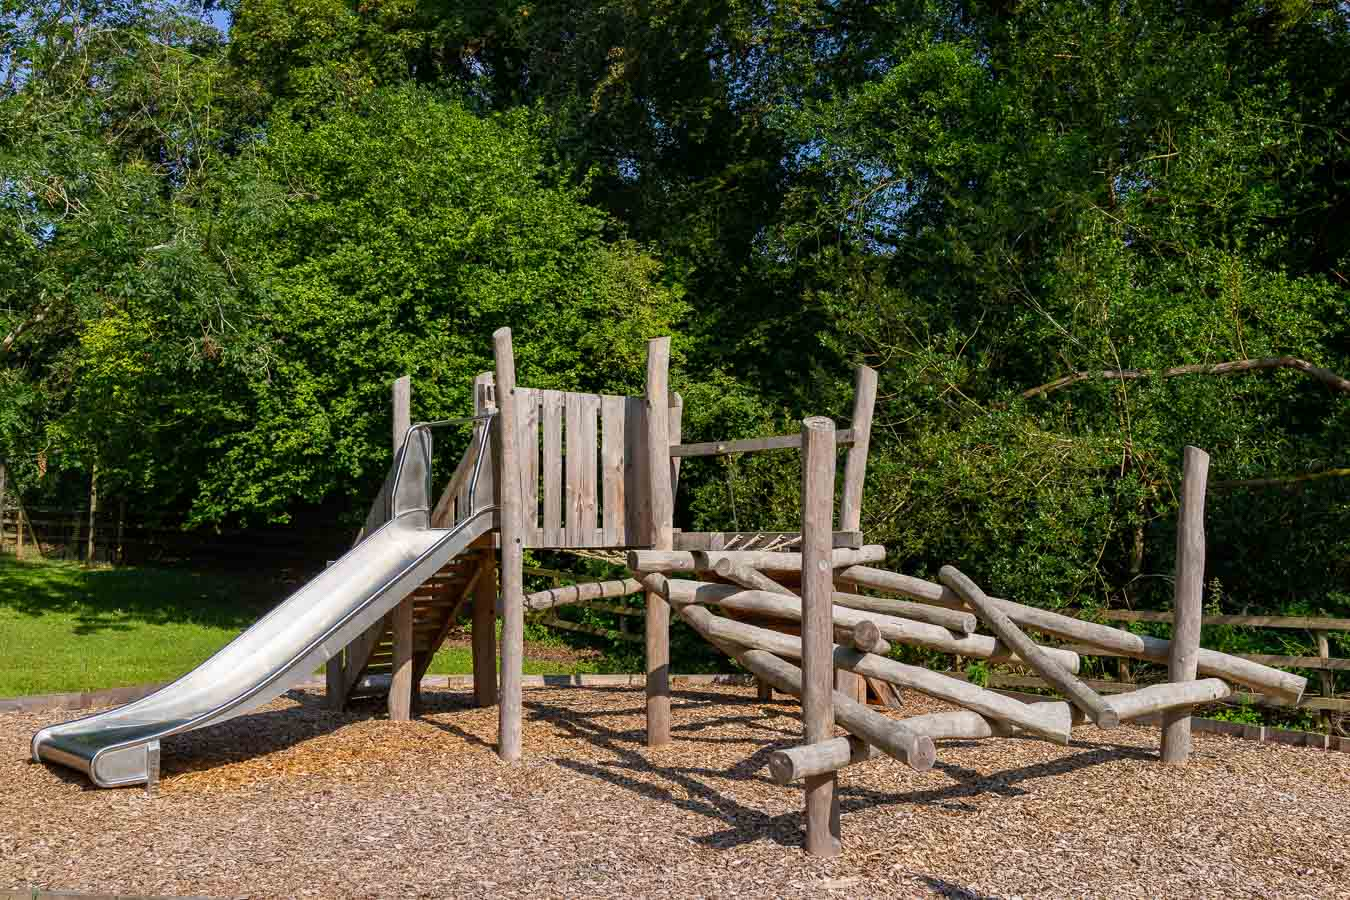 The natural playscape log pile climbing frame and slide in the outdoor playground